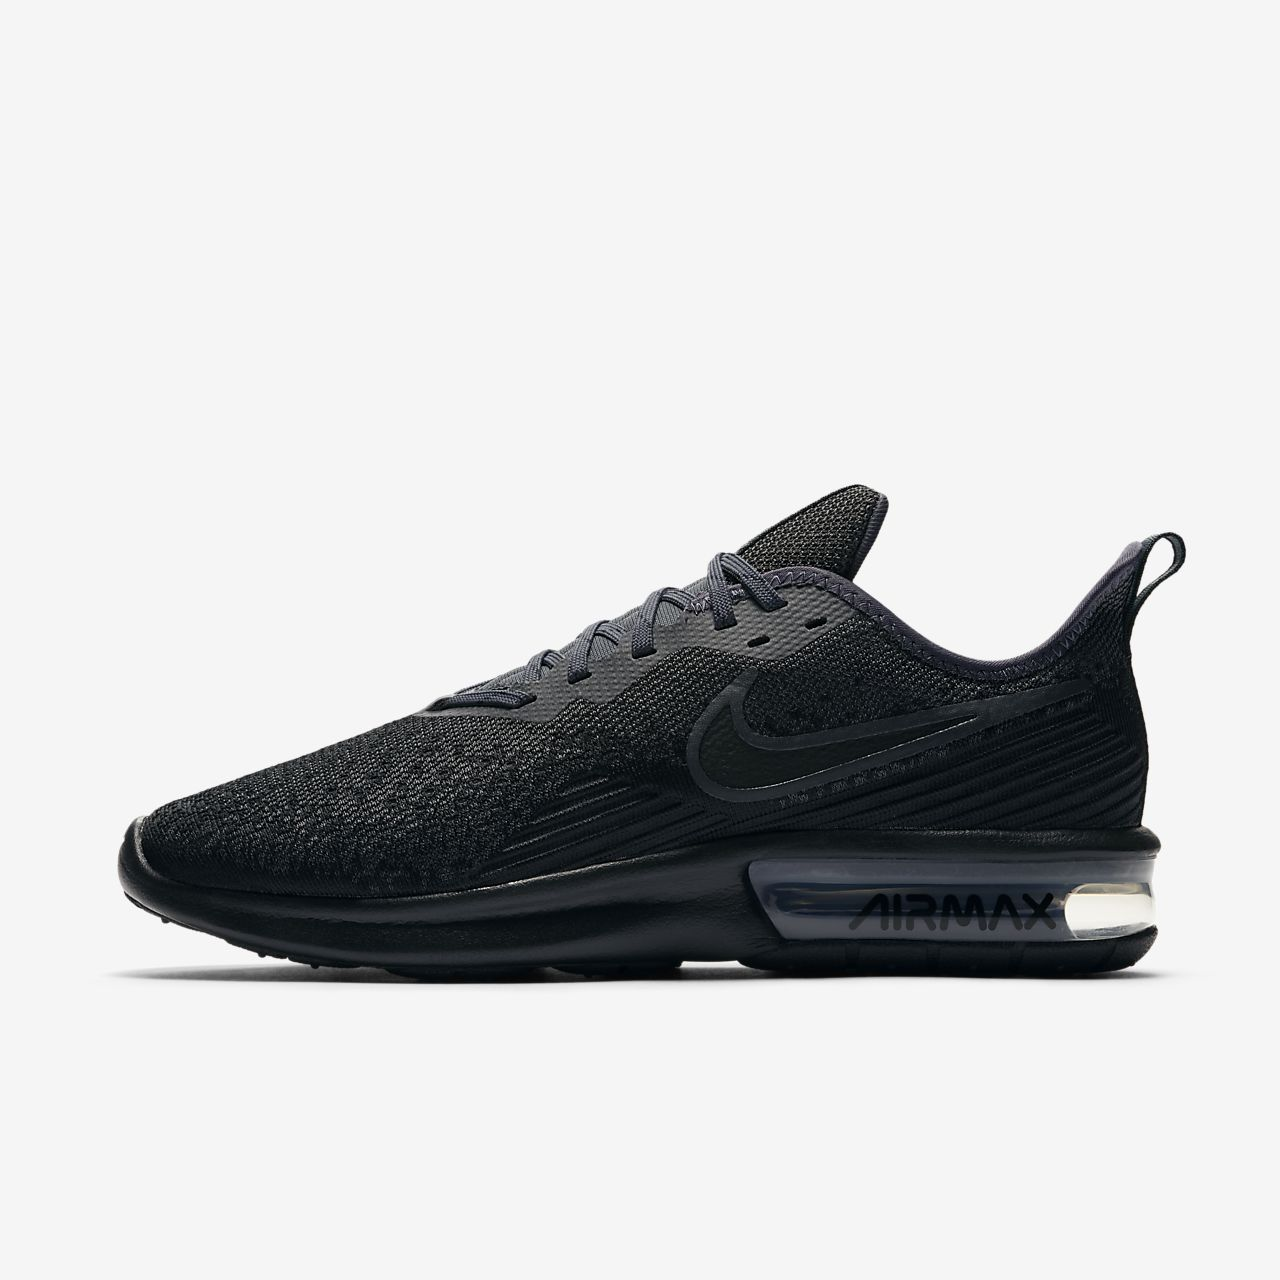 wholesale dealer 30e04 28fa2 Calzado para hombre Nike Air Max Sequent 4